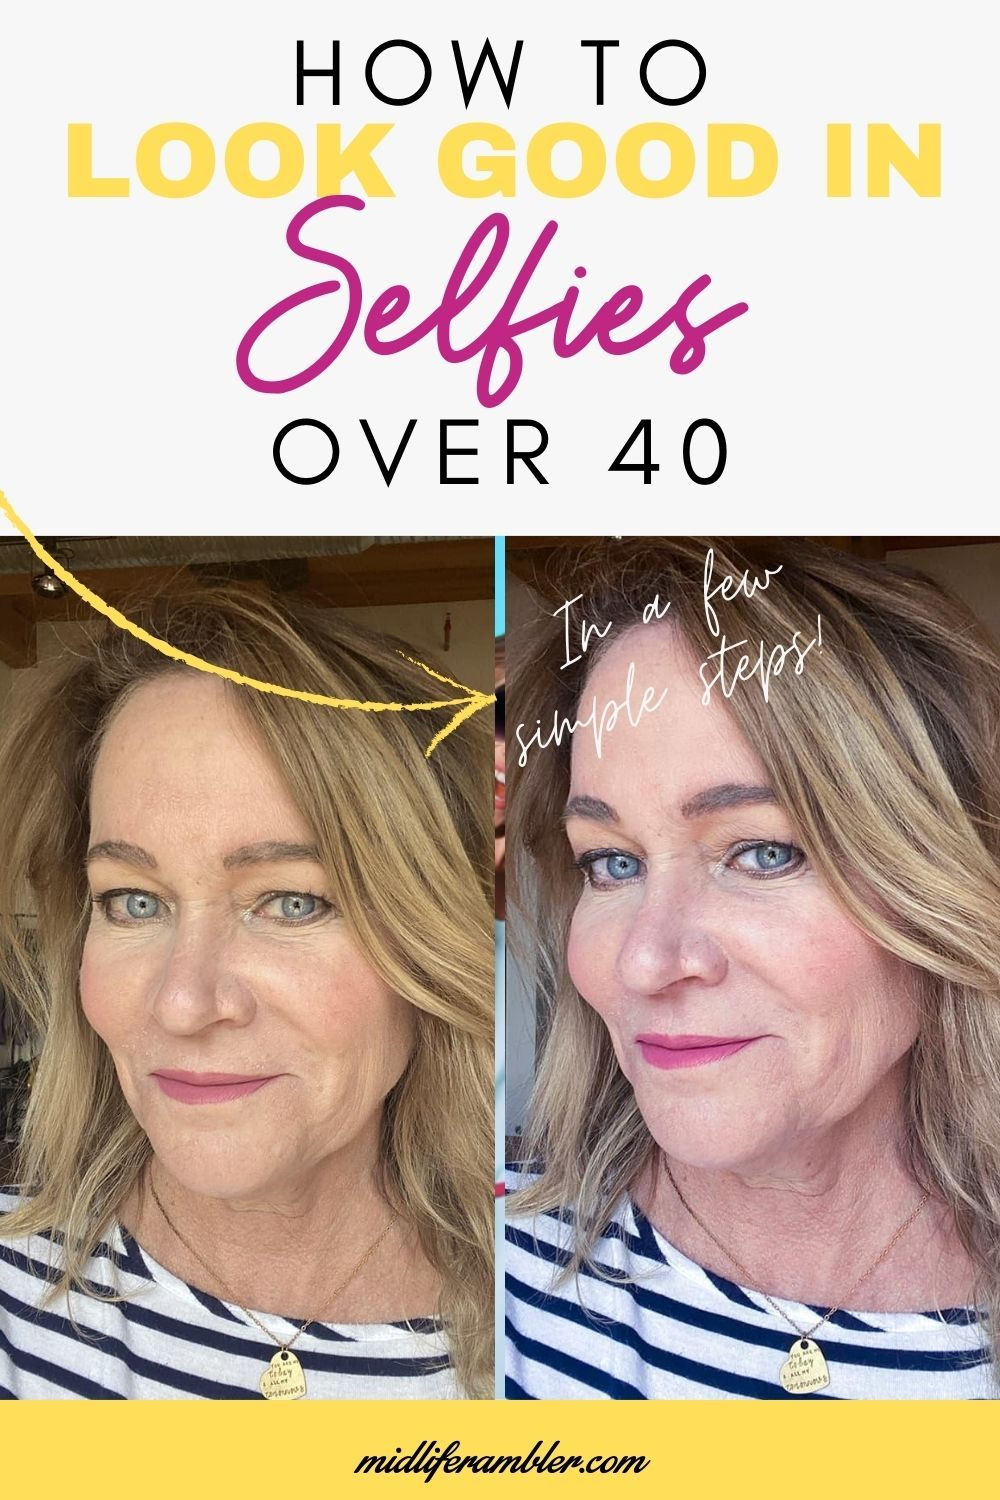 How To Take A Good Selfie Over 40 Selfie Tips How To Look Better Taking Good Selfies